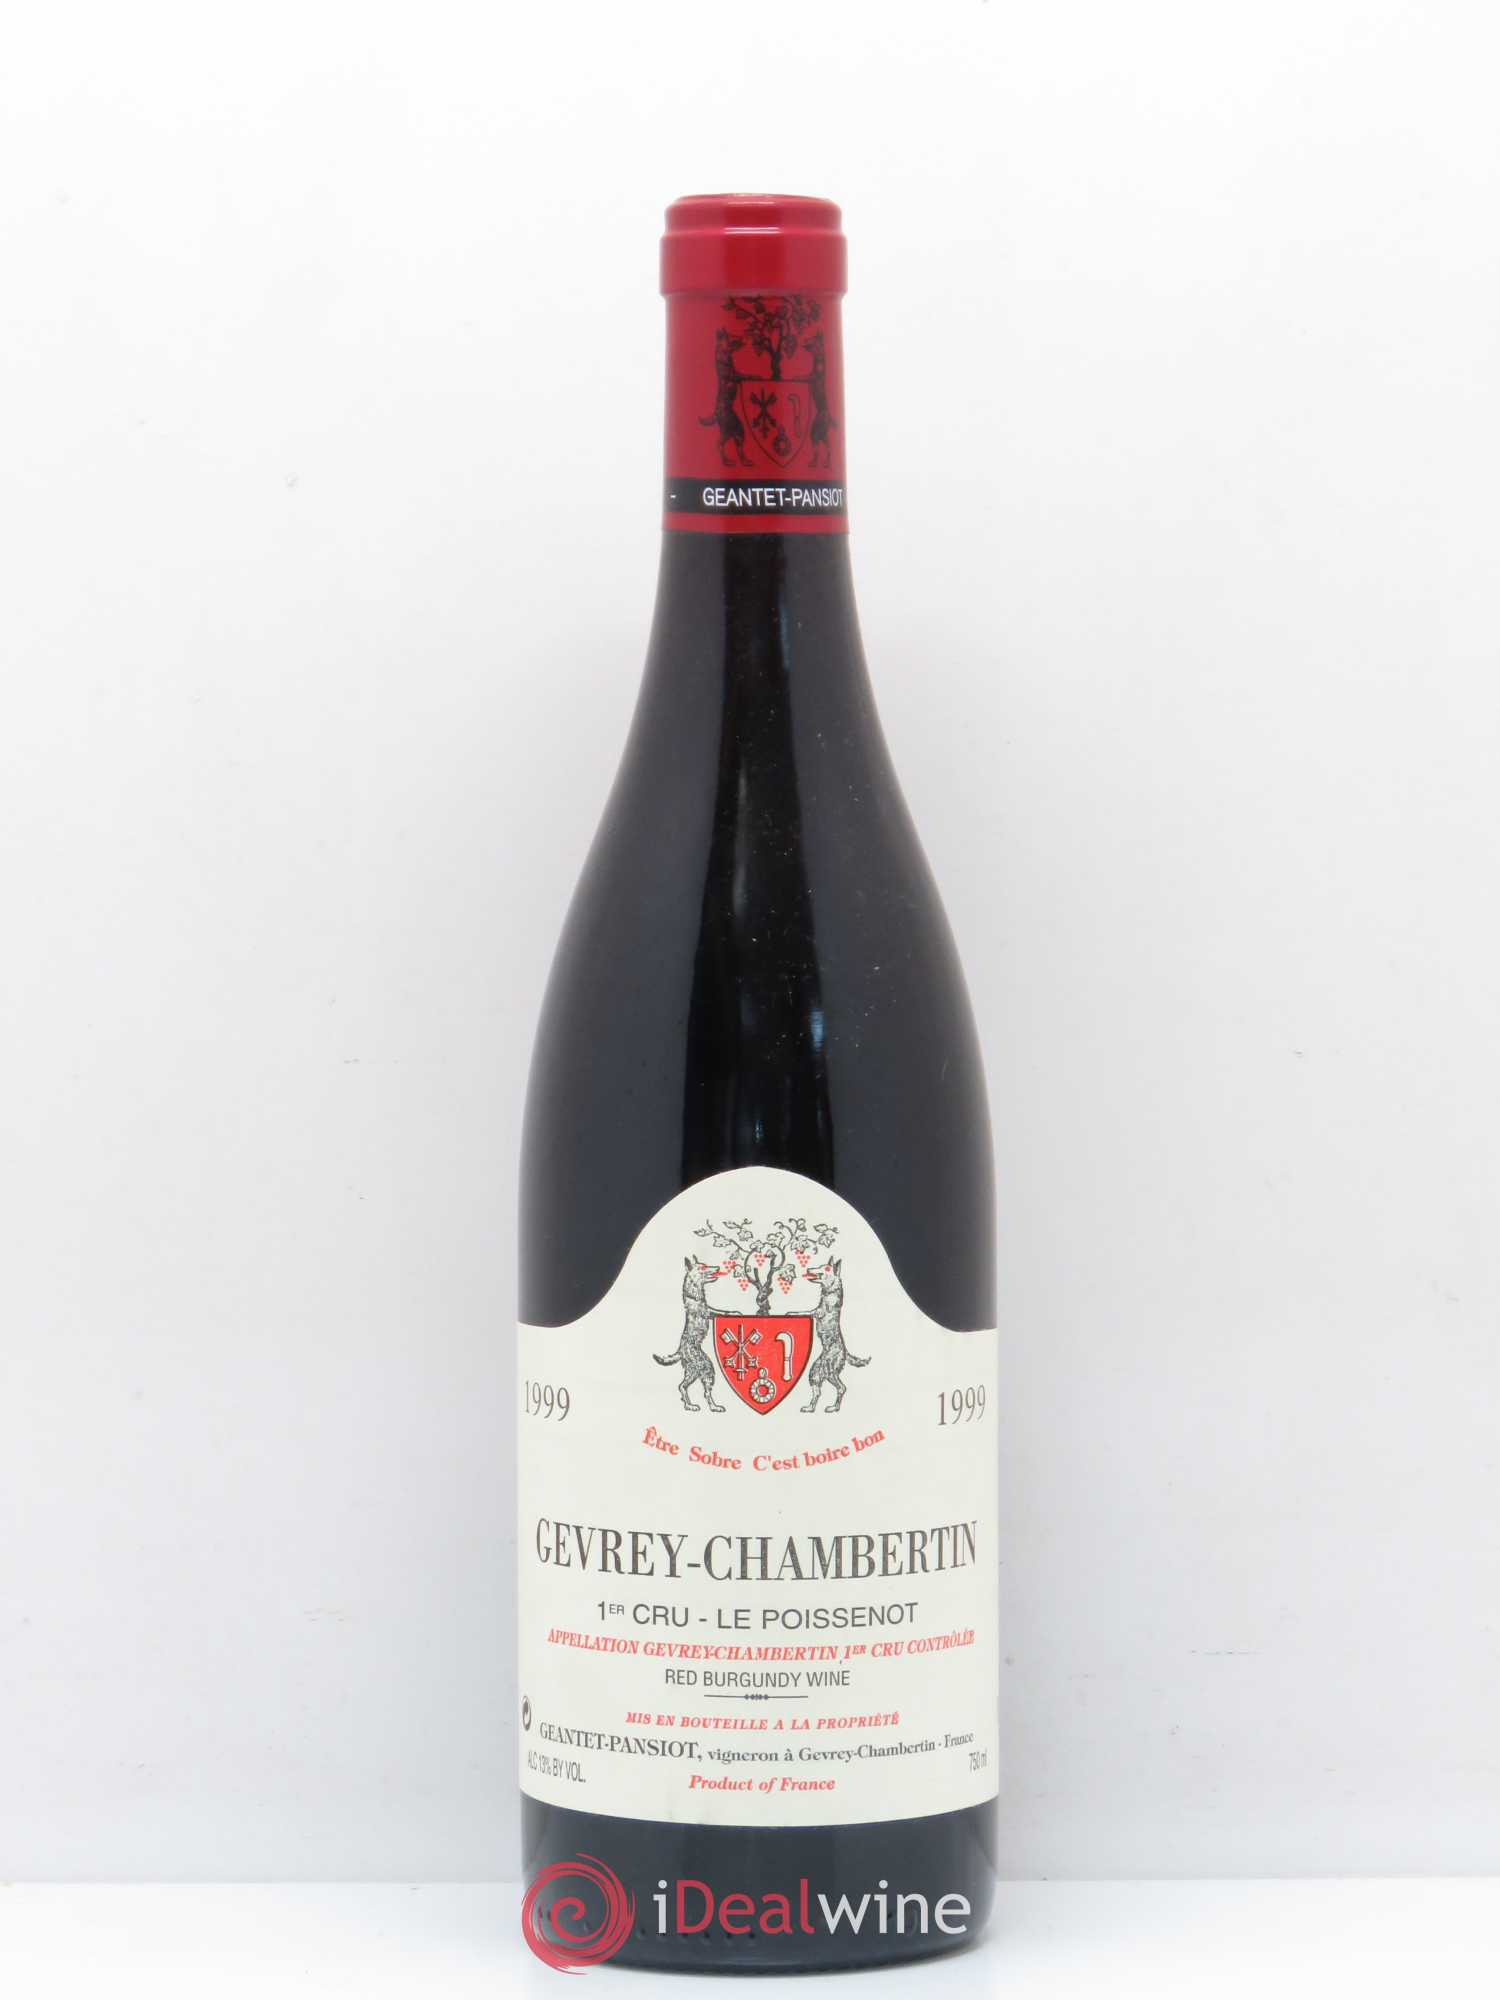 Gevrey-Chambertin 1er Cru Le Poissenot Geantet-Pansiot  1999 - Lot of 1 Bottle